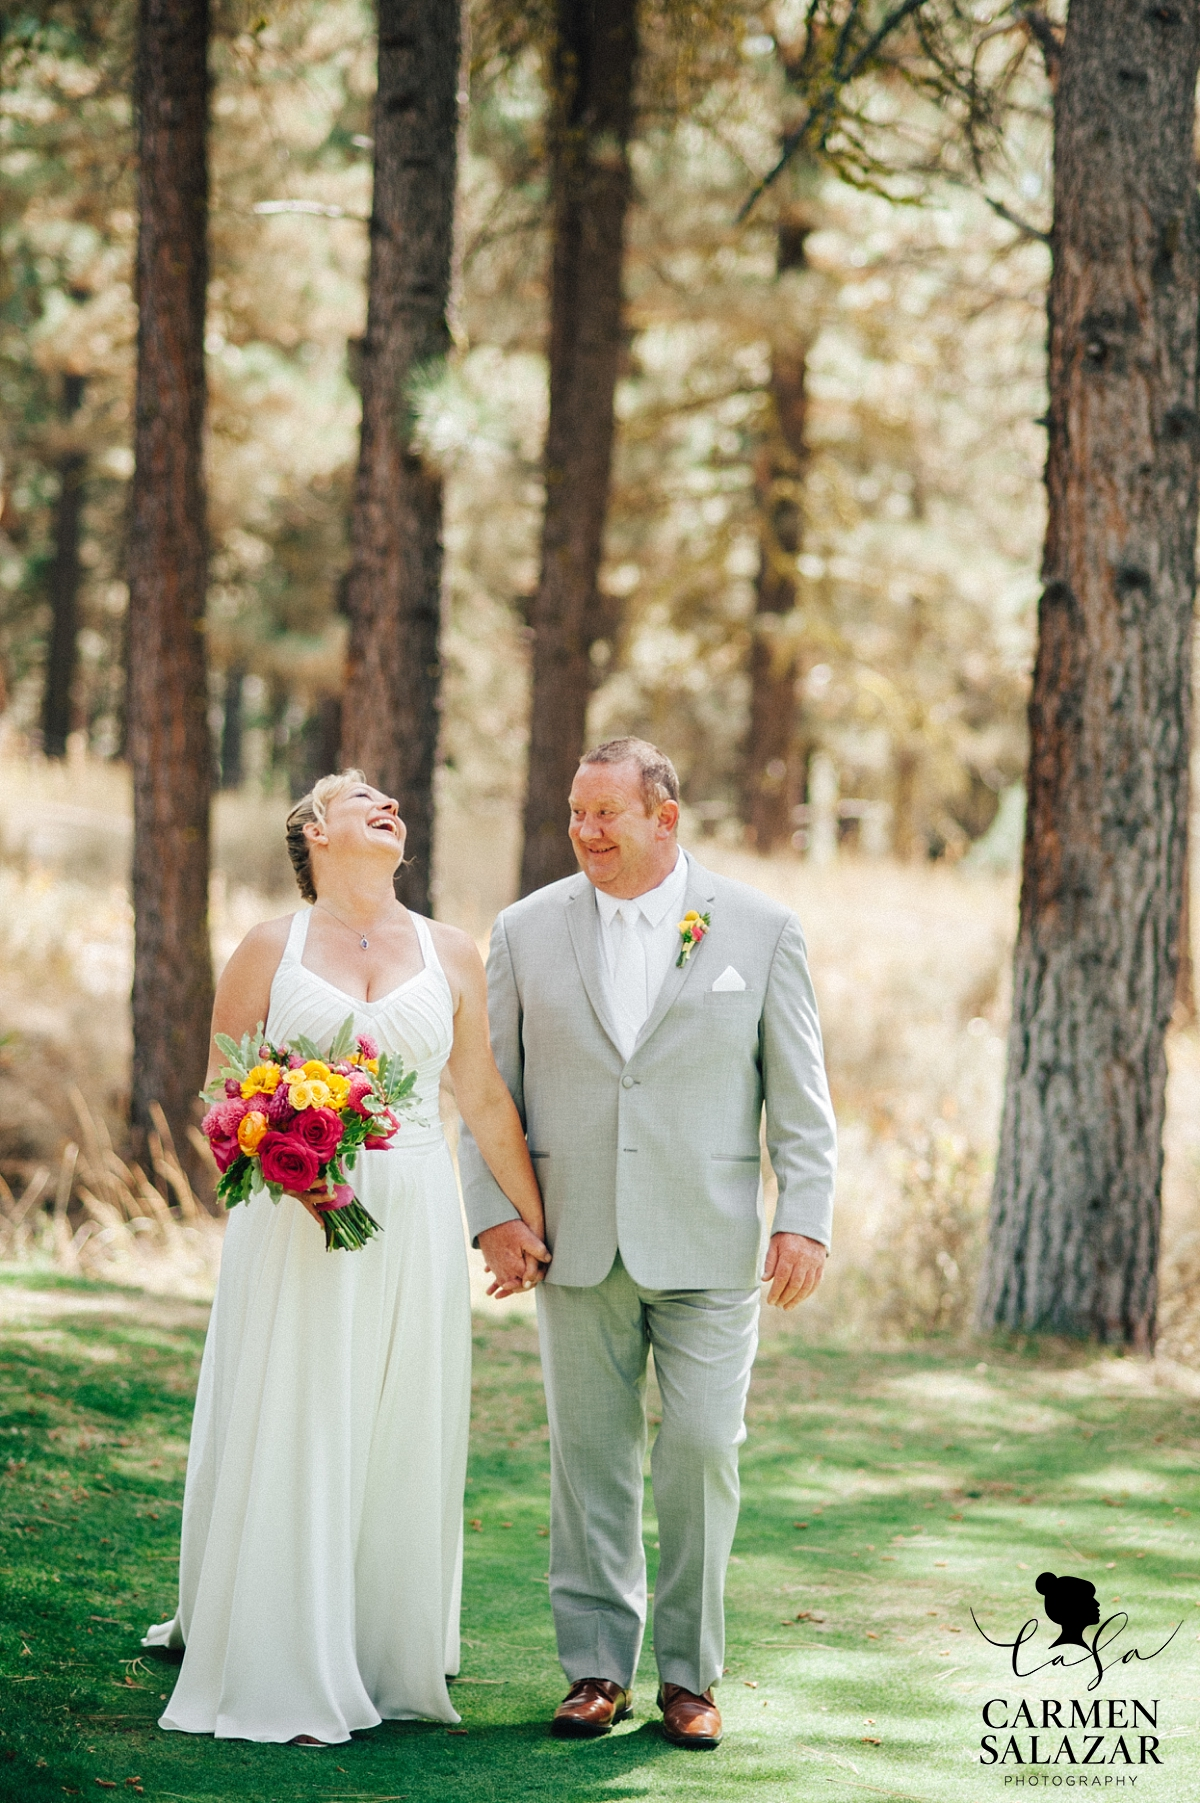 Bride and groom laughing at Tahoe ceremony - Carmen Salazar